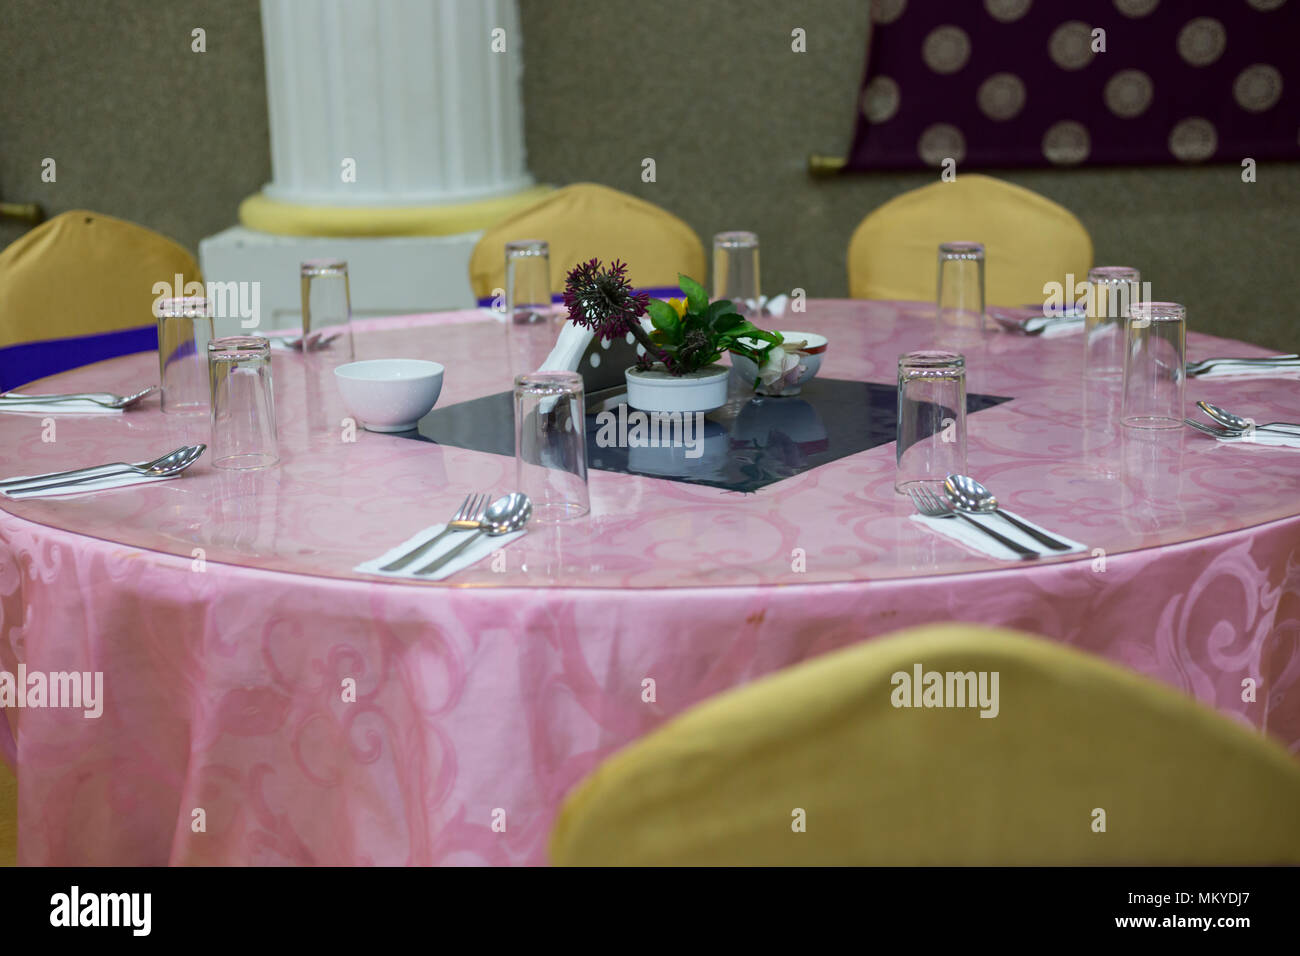 Normal Table Setup At Wedding Ceremony At Party Palace Stock Photo